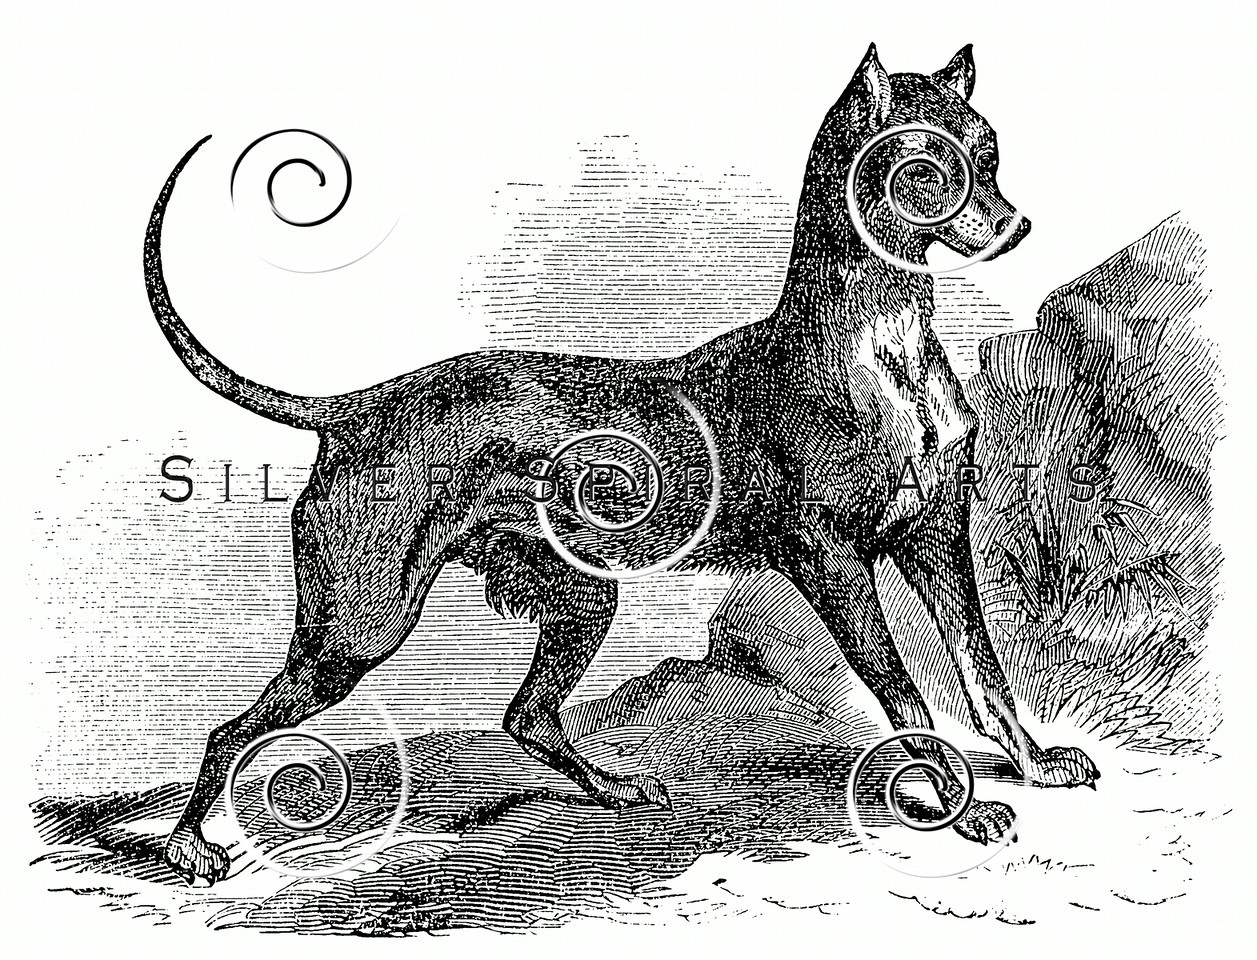 Vintage Doberman Dogs Illustration - 1800s Dog Images